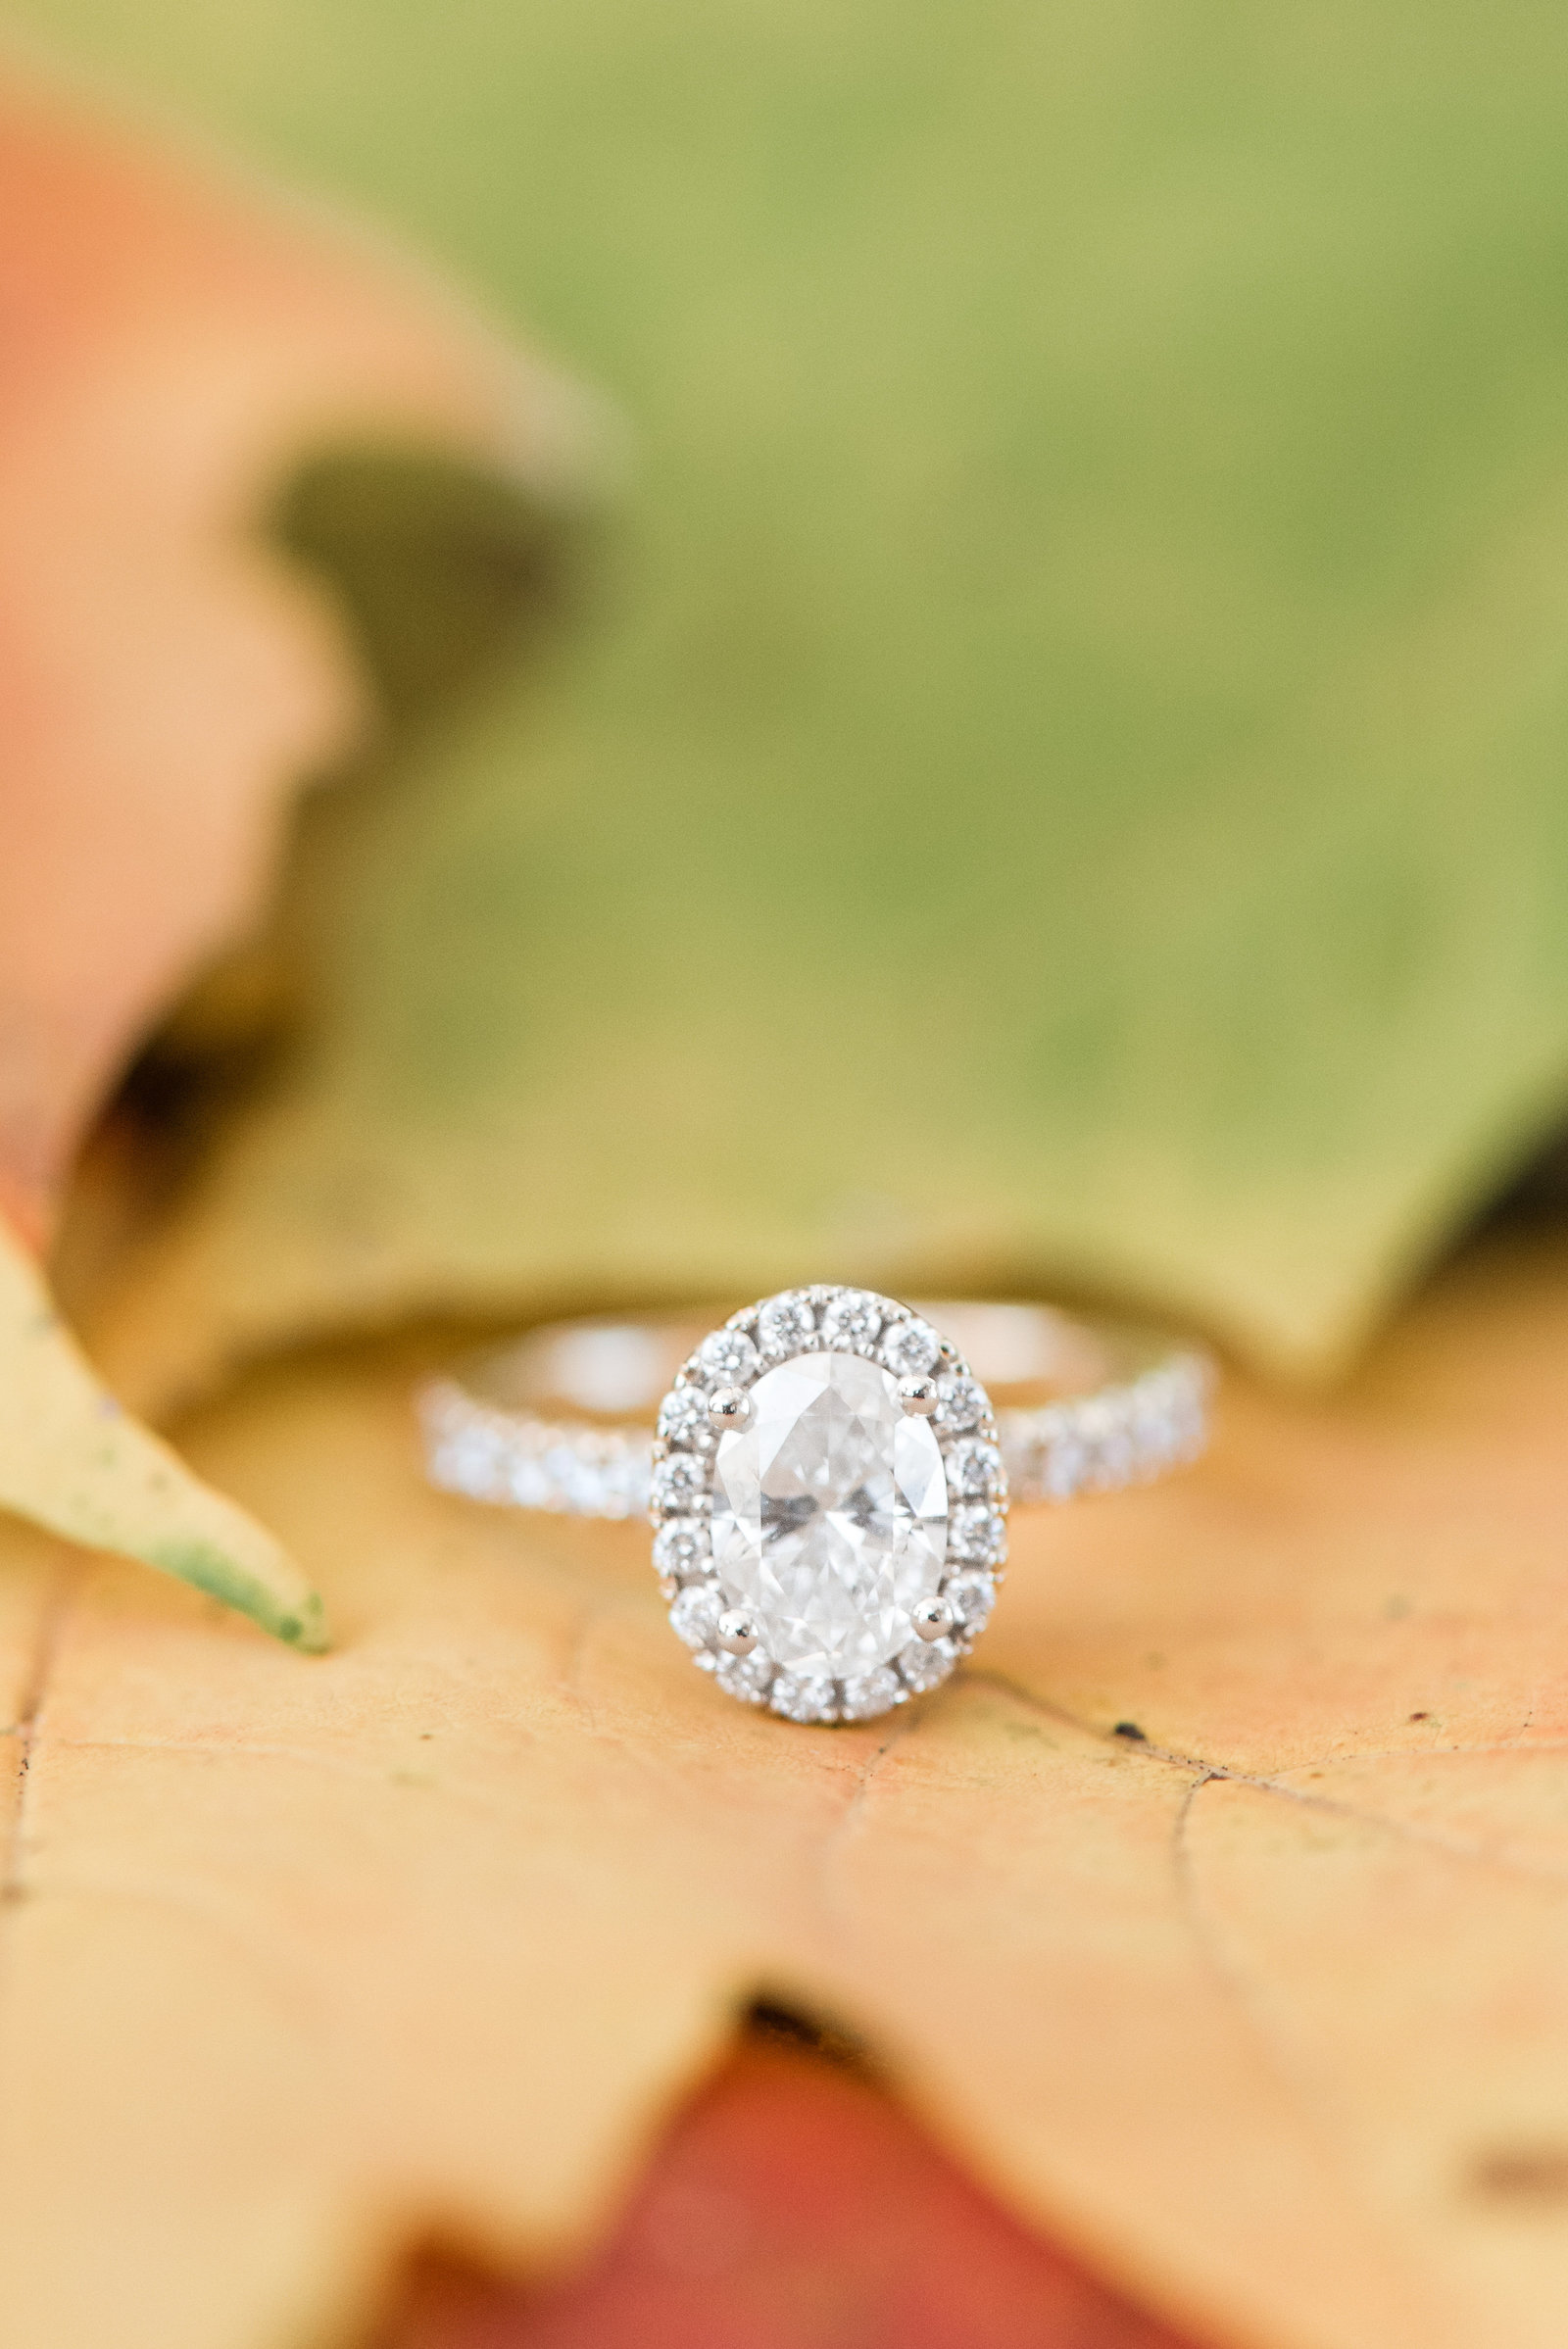 oval-diamond-engagement-ring-fall-leaves-photo849